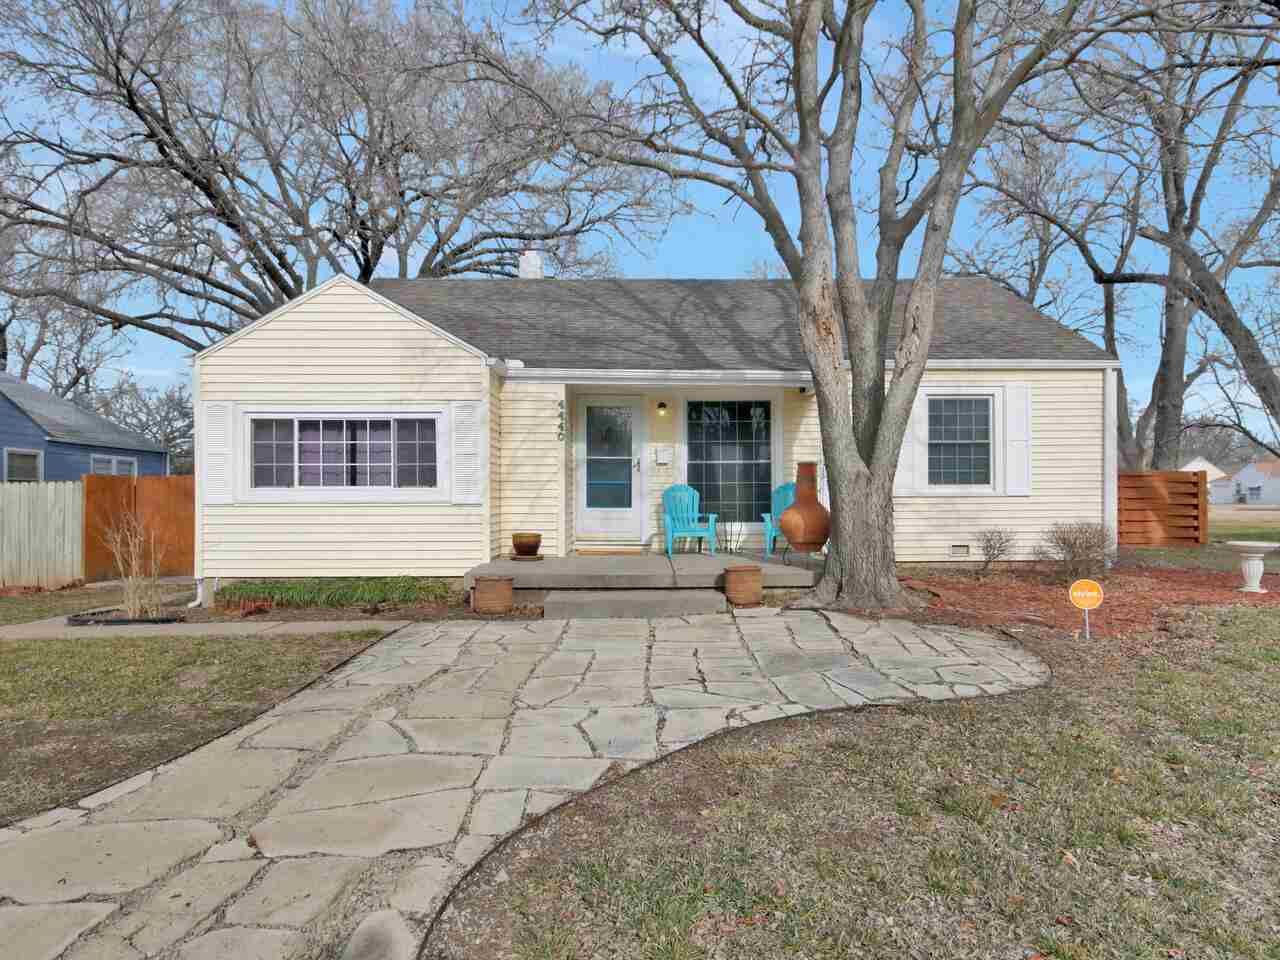 Adorable home on a large lot with mature trees has been beautifully updated. Flagstone walkway leadi